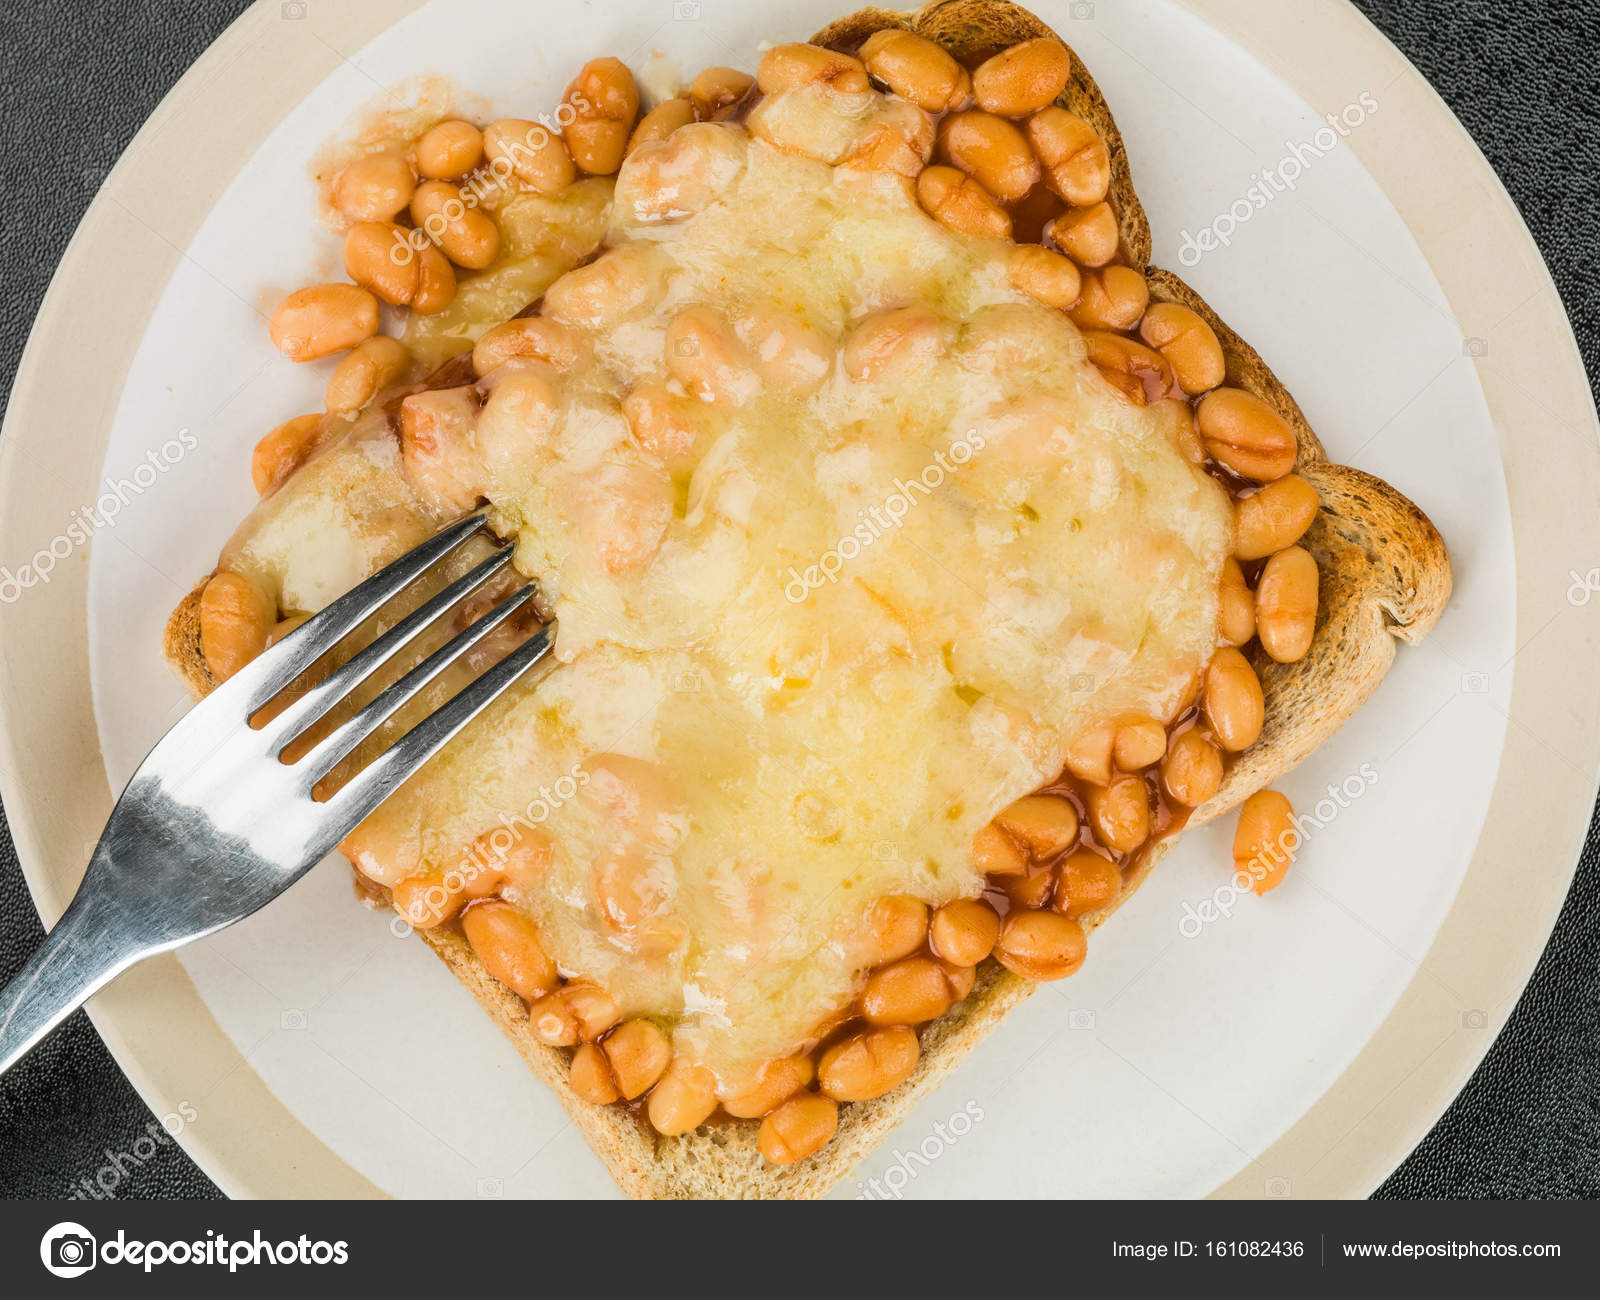 recipe: beans on toast with cheese [21]